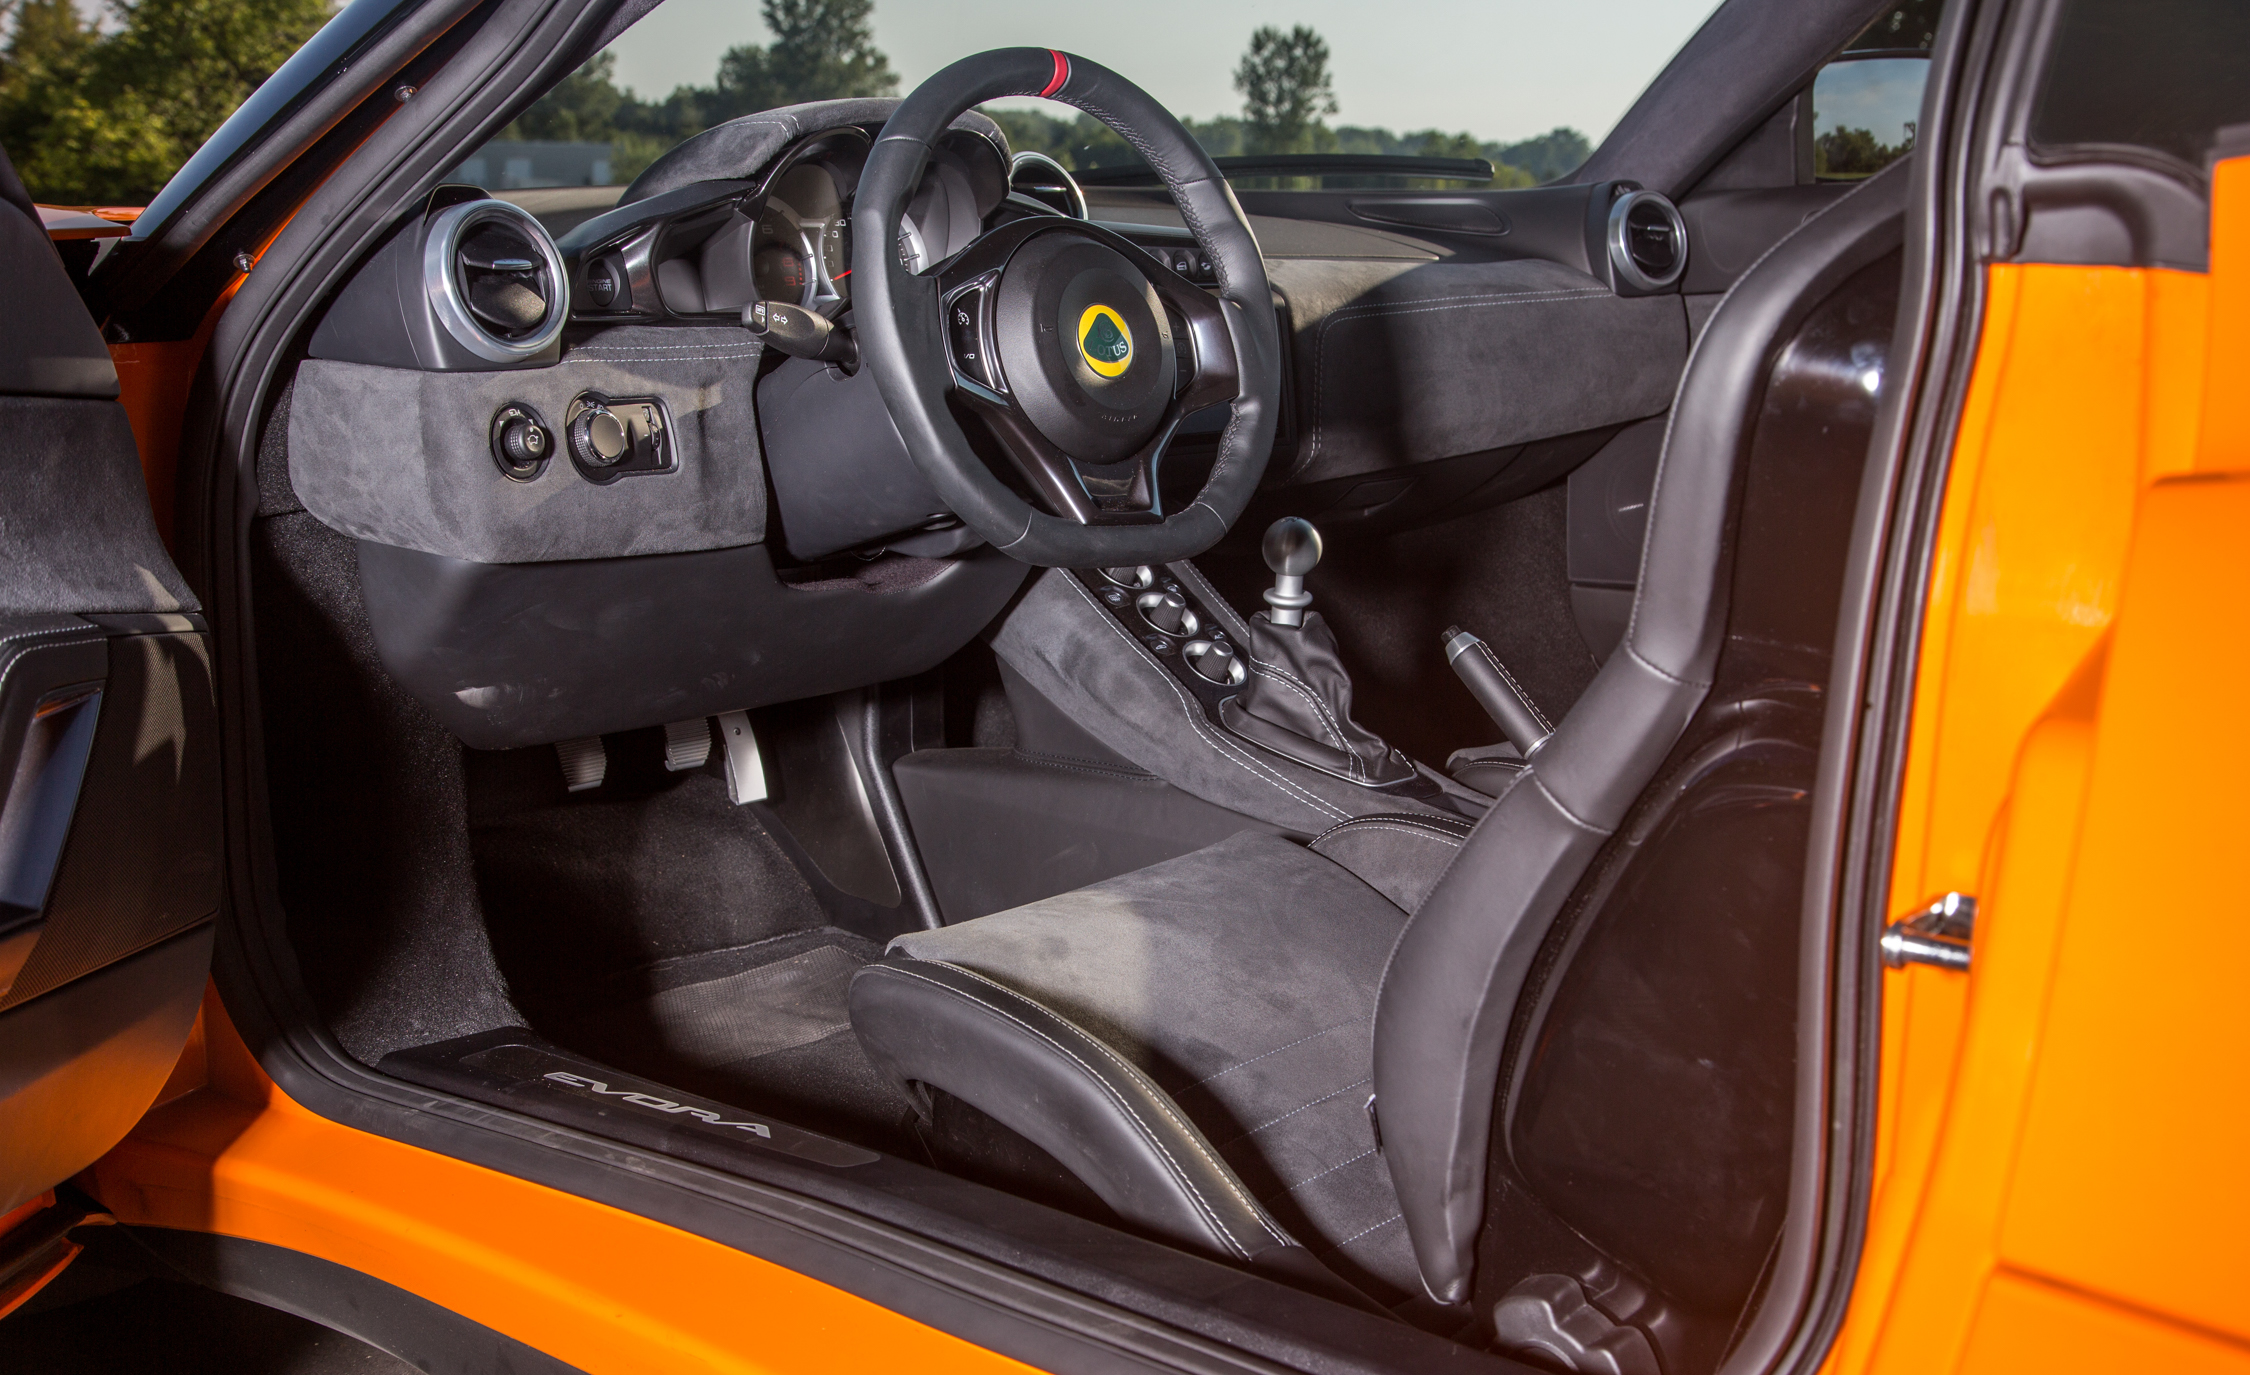 2017 Lotus Evora 400 Interior Cockpit (Photo 8 of 12)